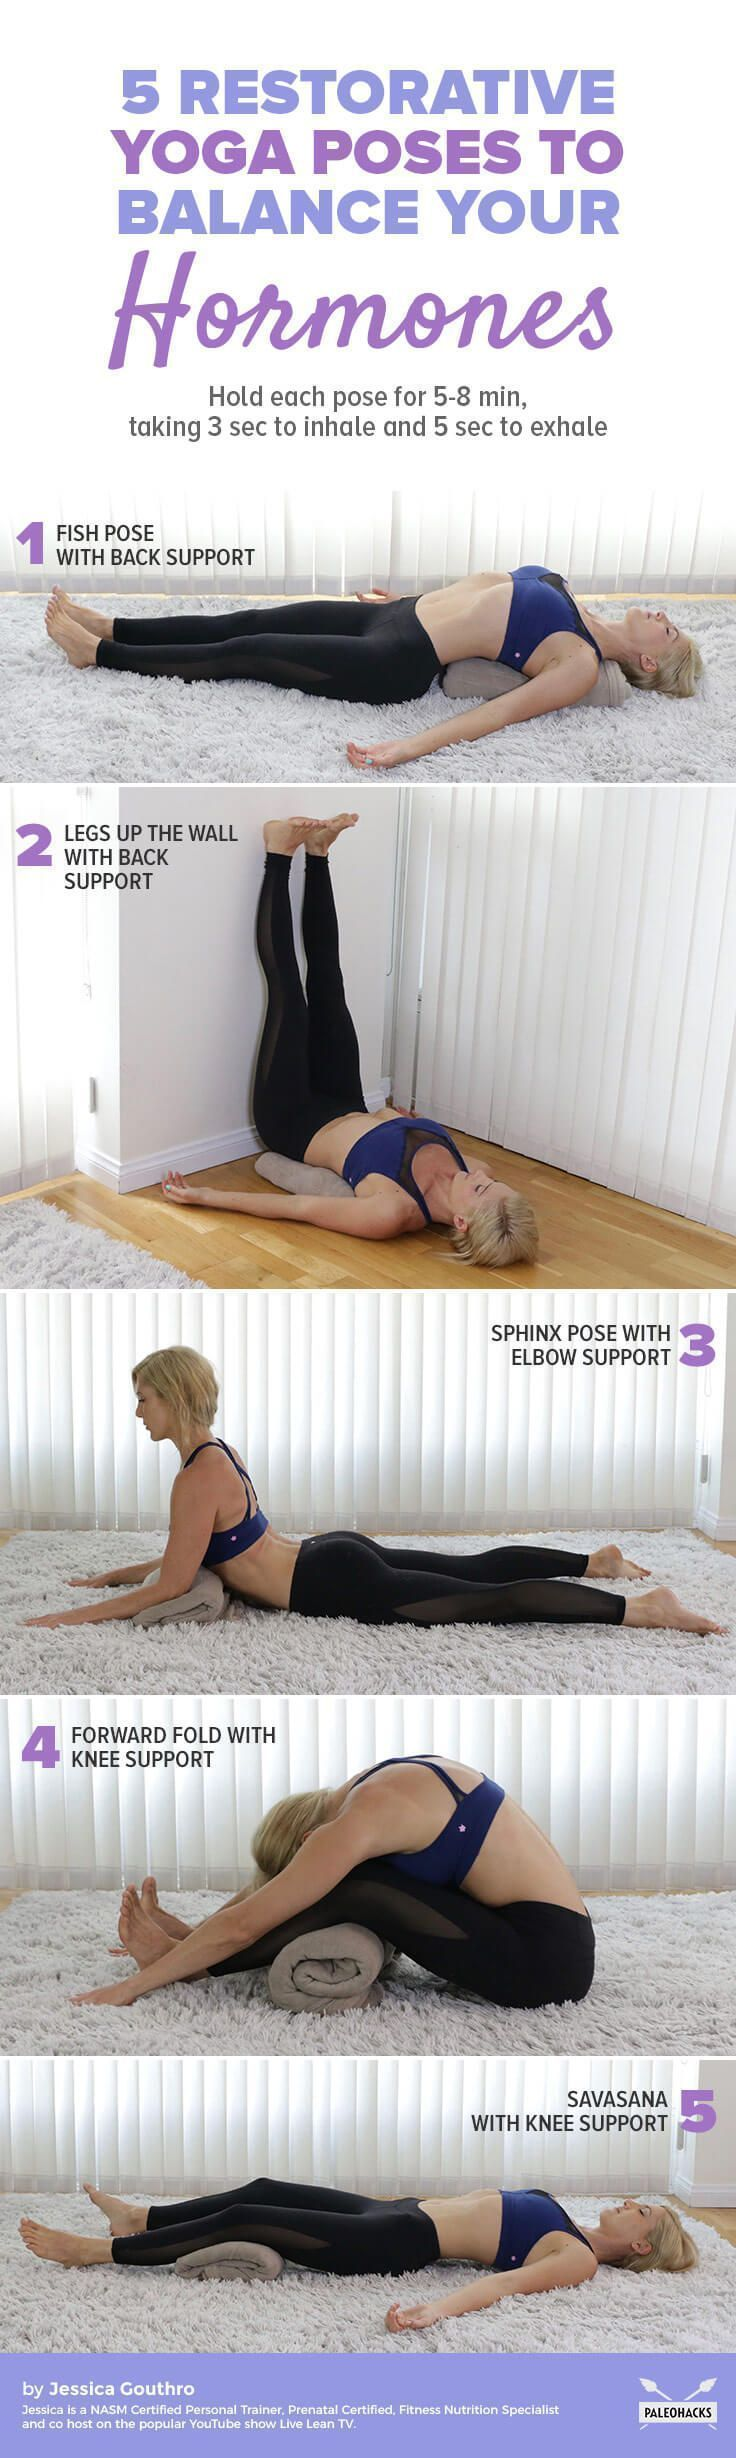 If You're In Pain, START HERE. 10 Exercises for Back and Hip Pain You Should Be … – einfach loslassen | Martina Aust | Essverhalten ändern, emotionale Muster lösen, intuitiv essen